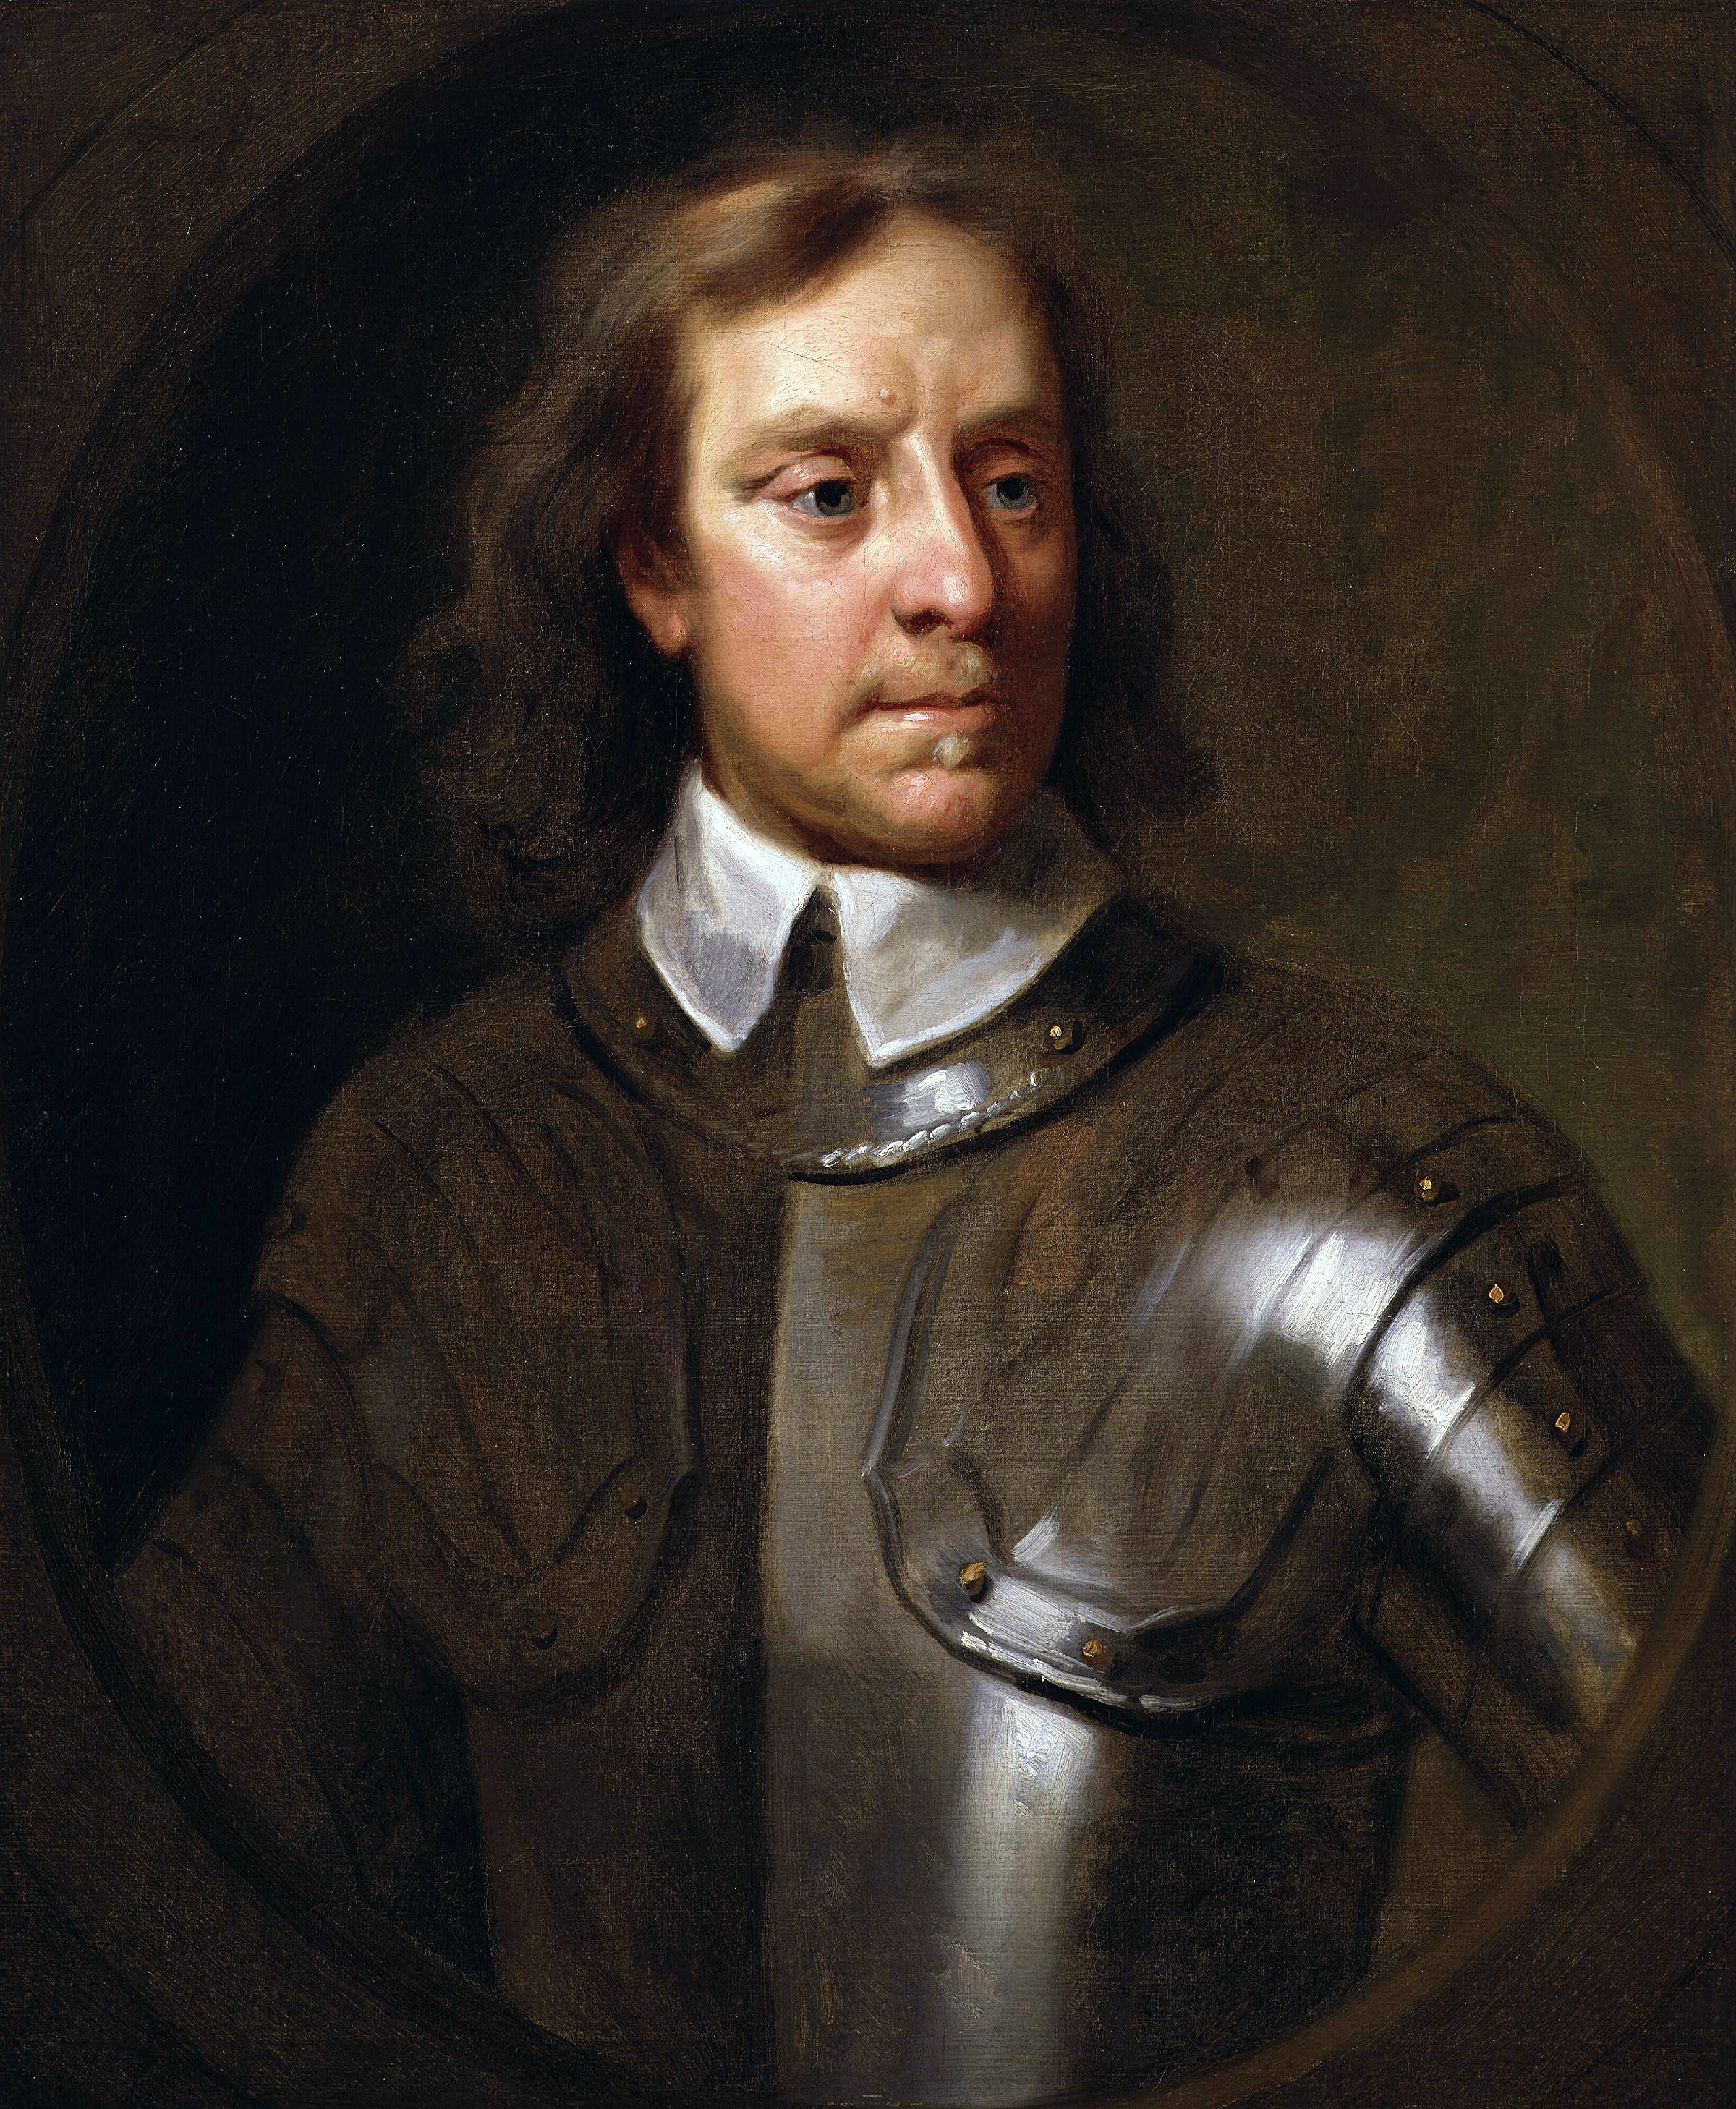 http://upload.wikimedia.org/wikipedia/commons/2/24/Oliver_Cromwell_by_Samuel_Cooper.jpg